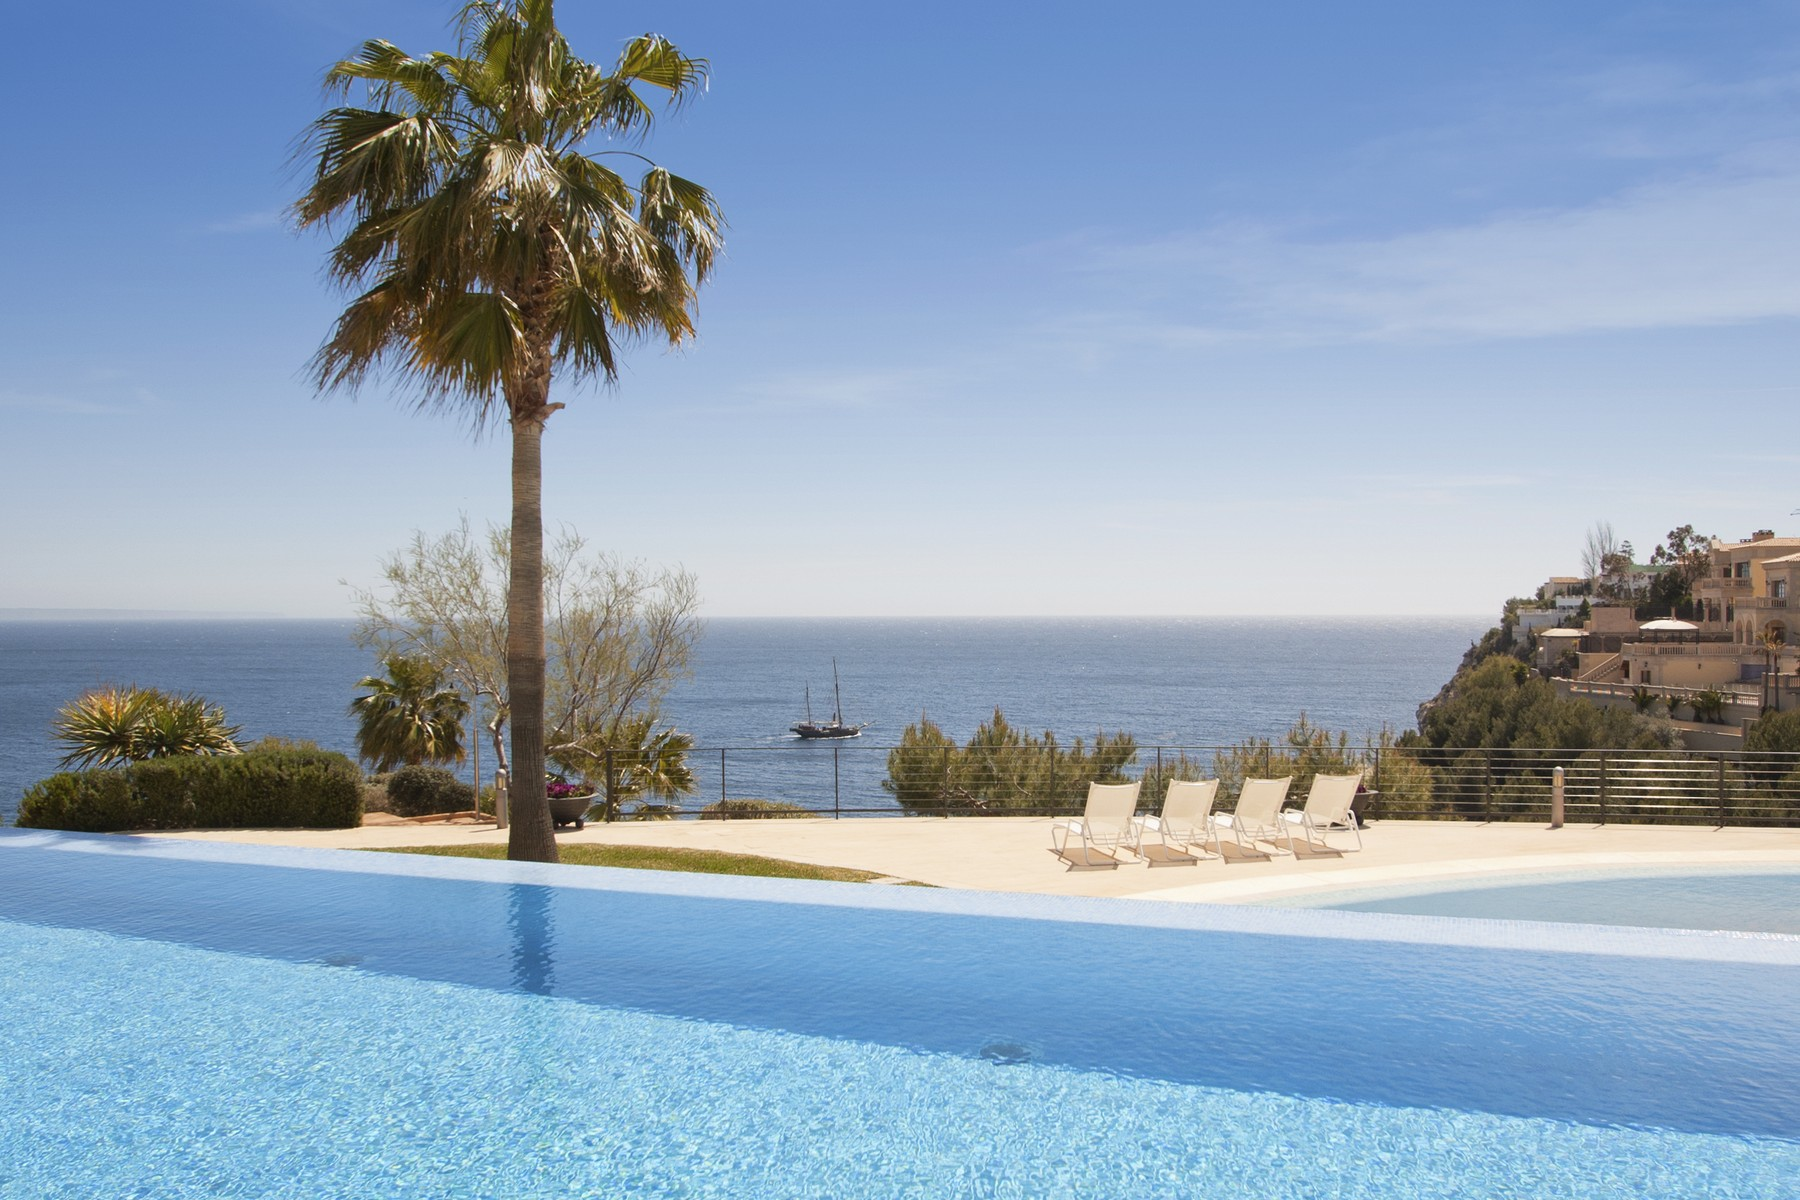 Apartment for Sale at Spacious front line Penthouse in Sol de Mallorca Sol De Mallorca, Mallorca 07181 Spain